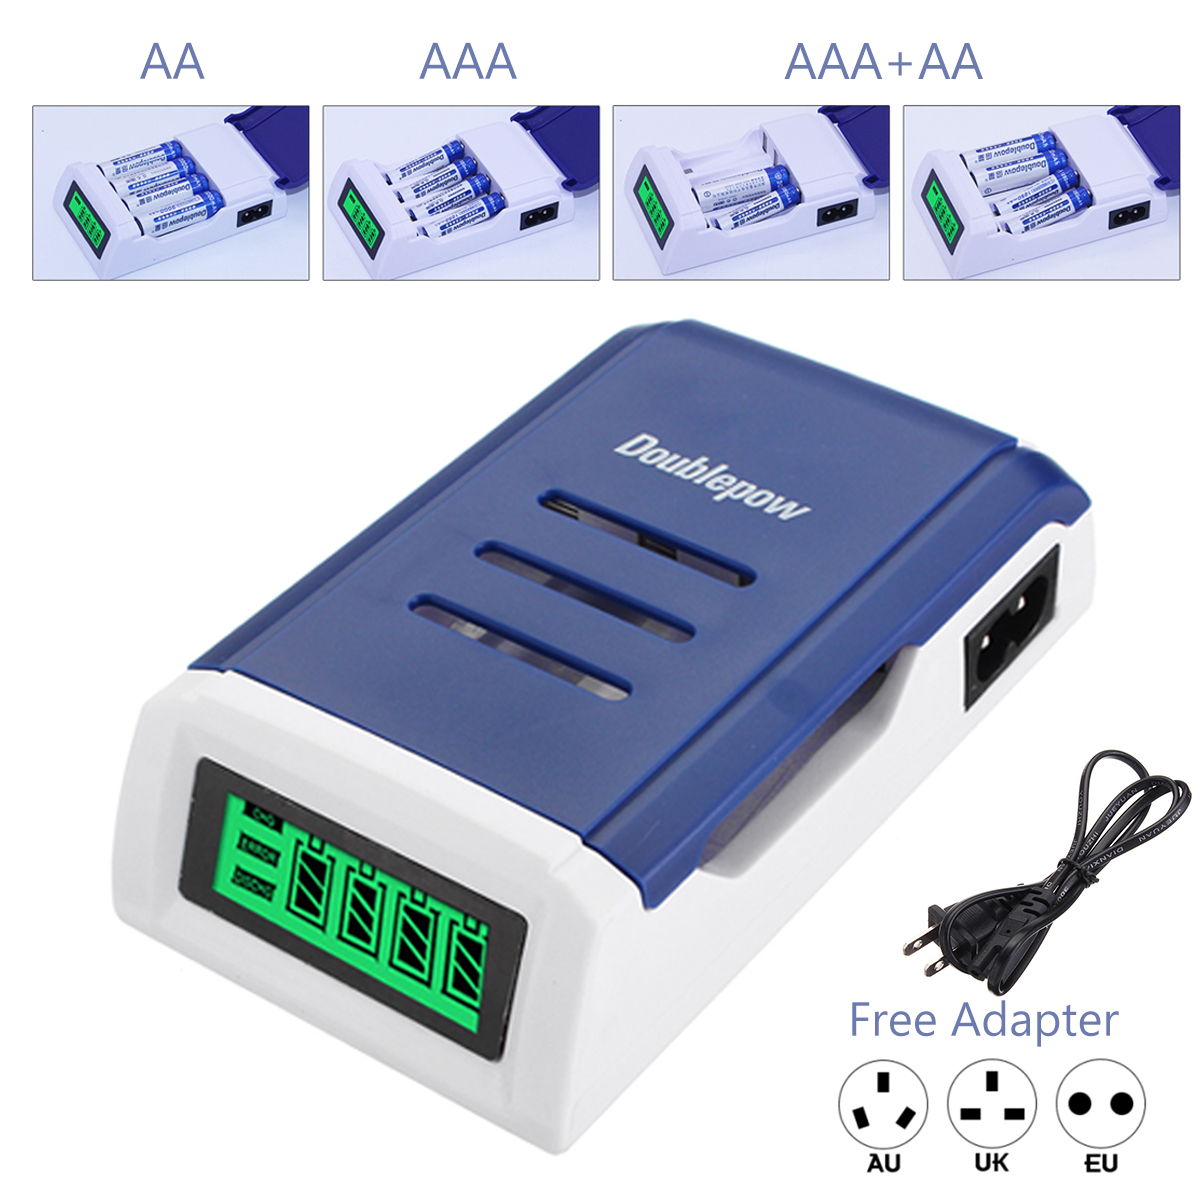 AC 100-240V LCD Display Intelligent Fast Battery Charger for AA AAA Rechargeable Batteries